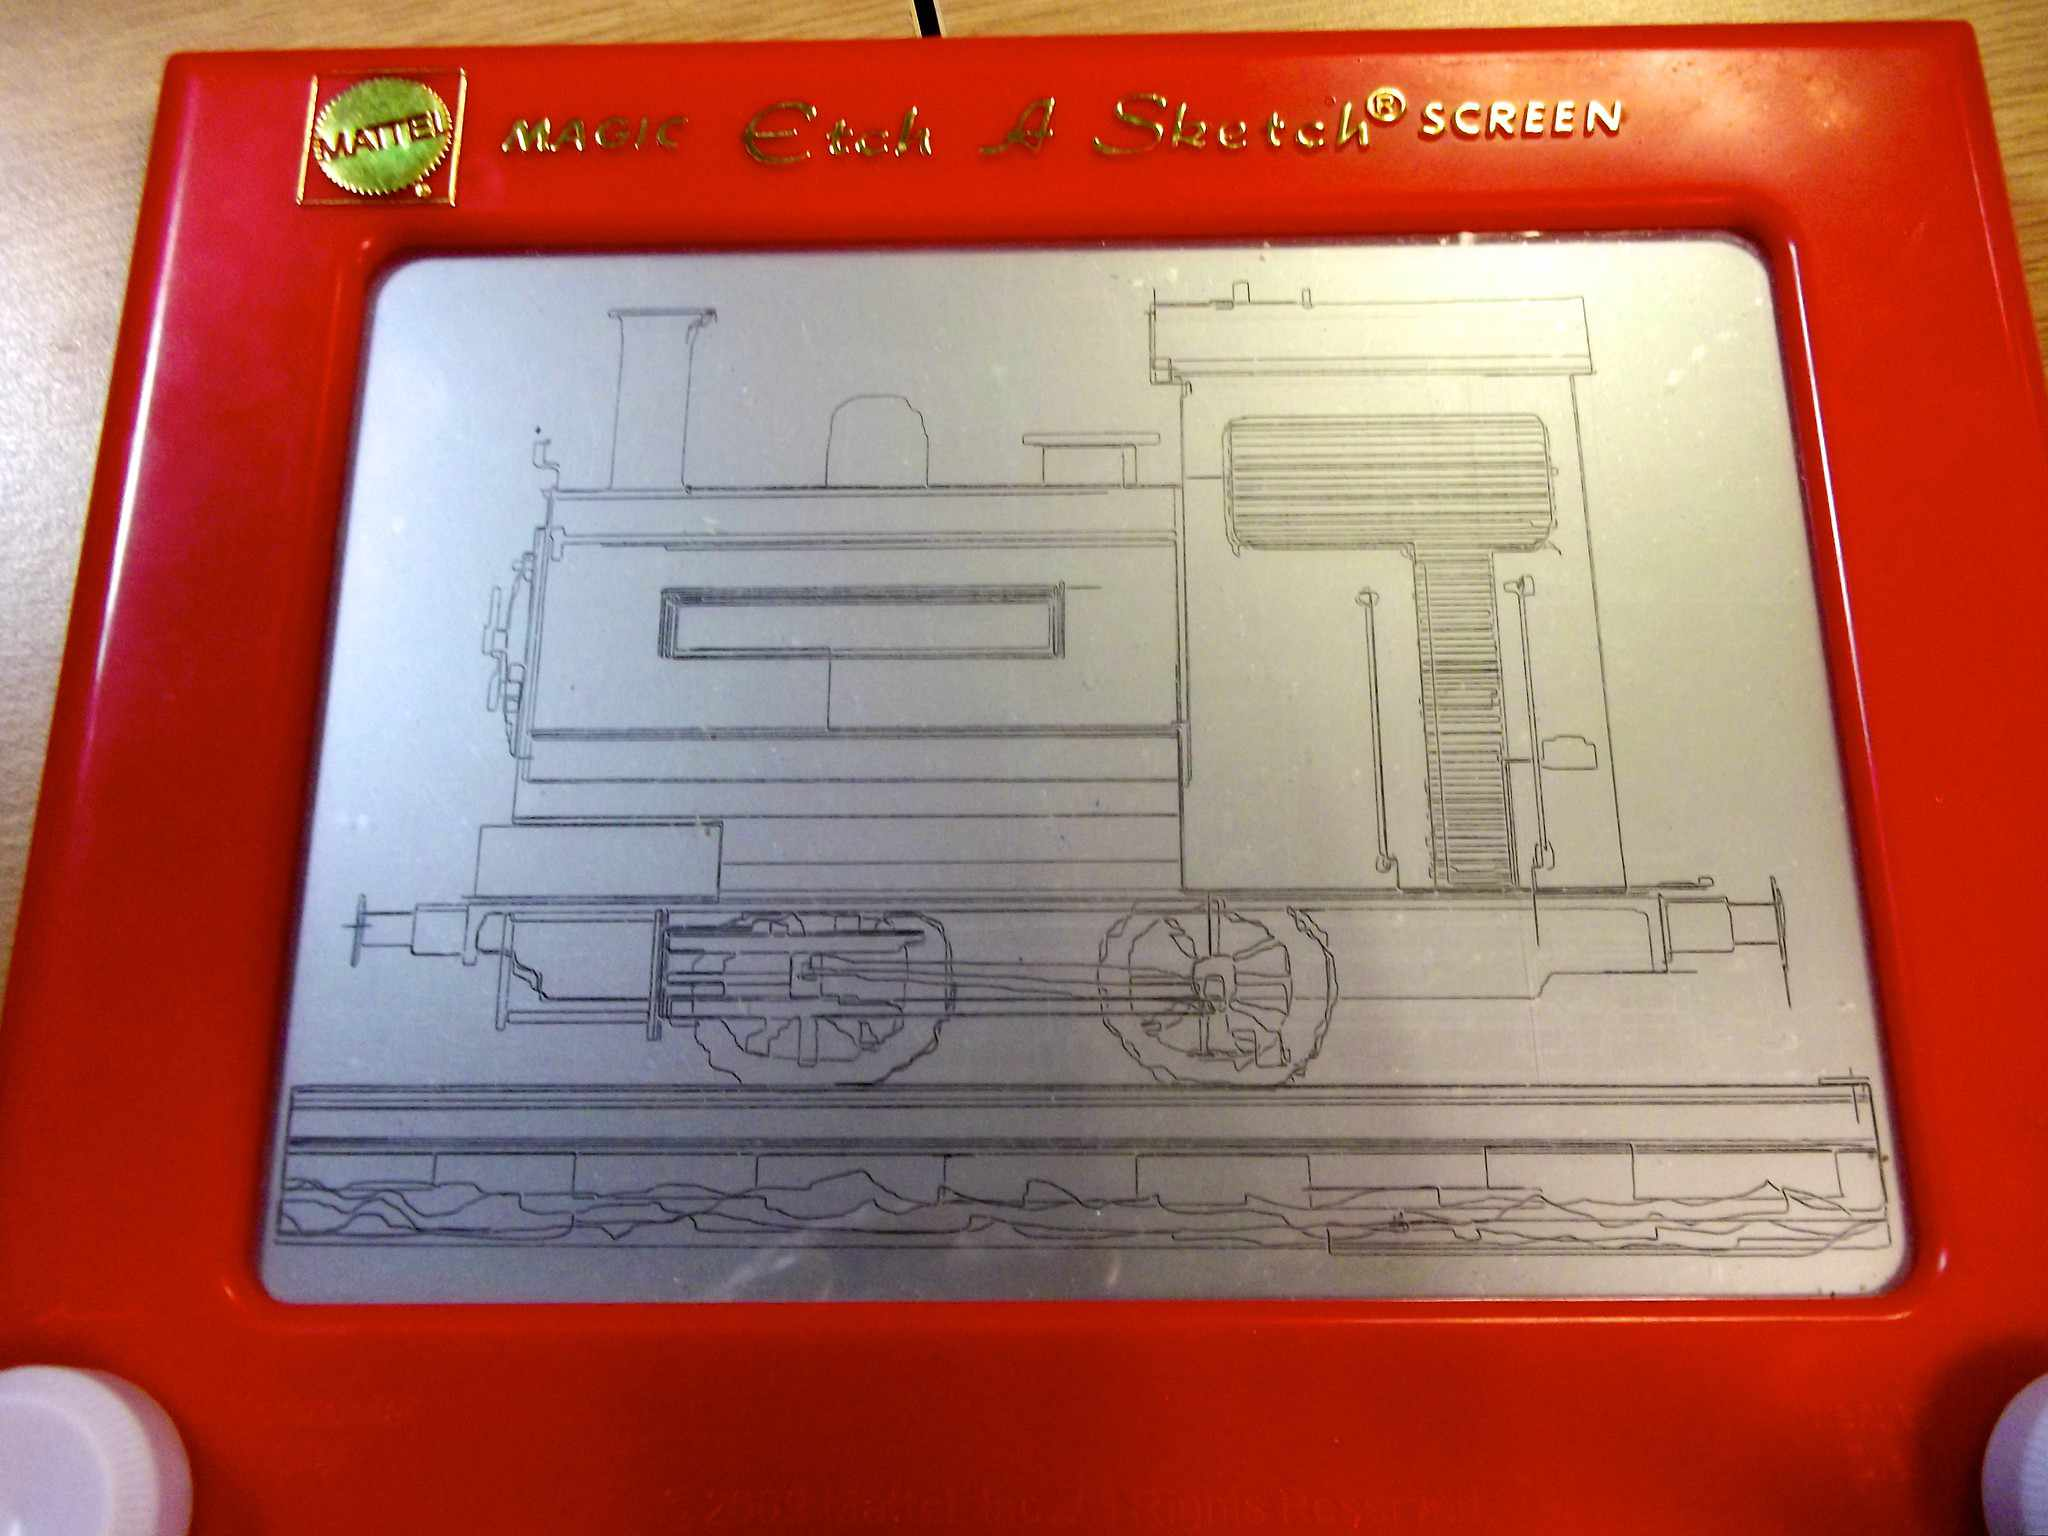 Image of an Etch-a-Sketch with a train drawn on it.